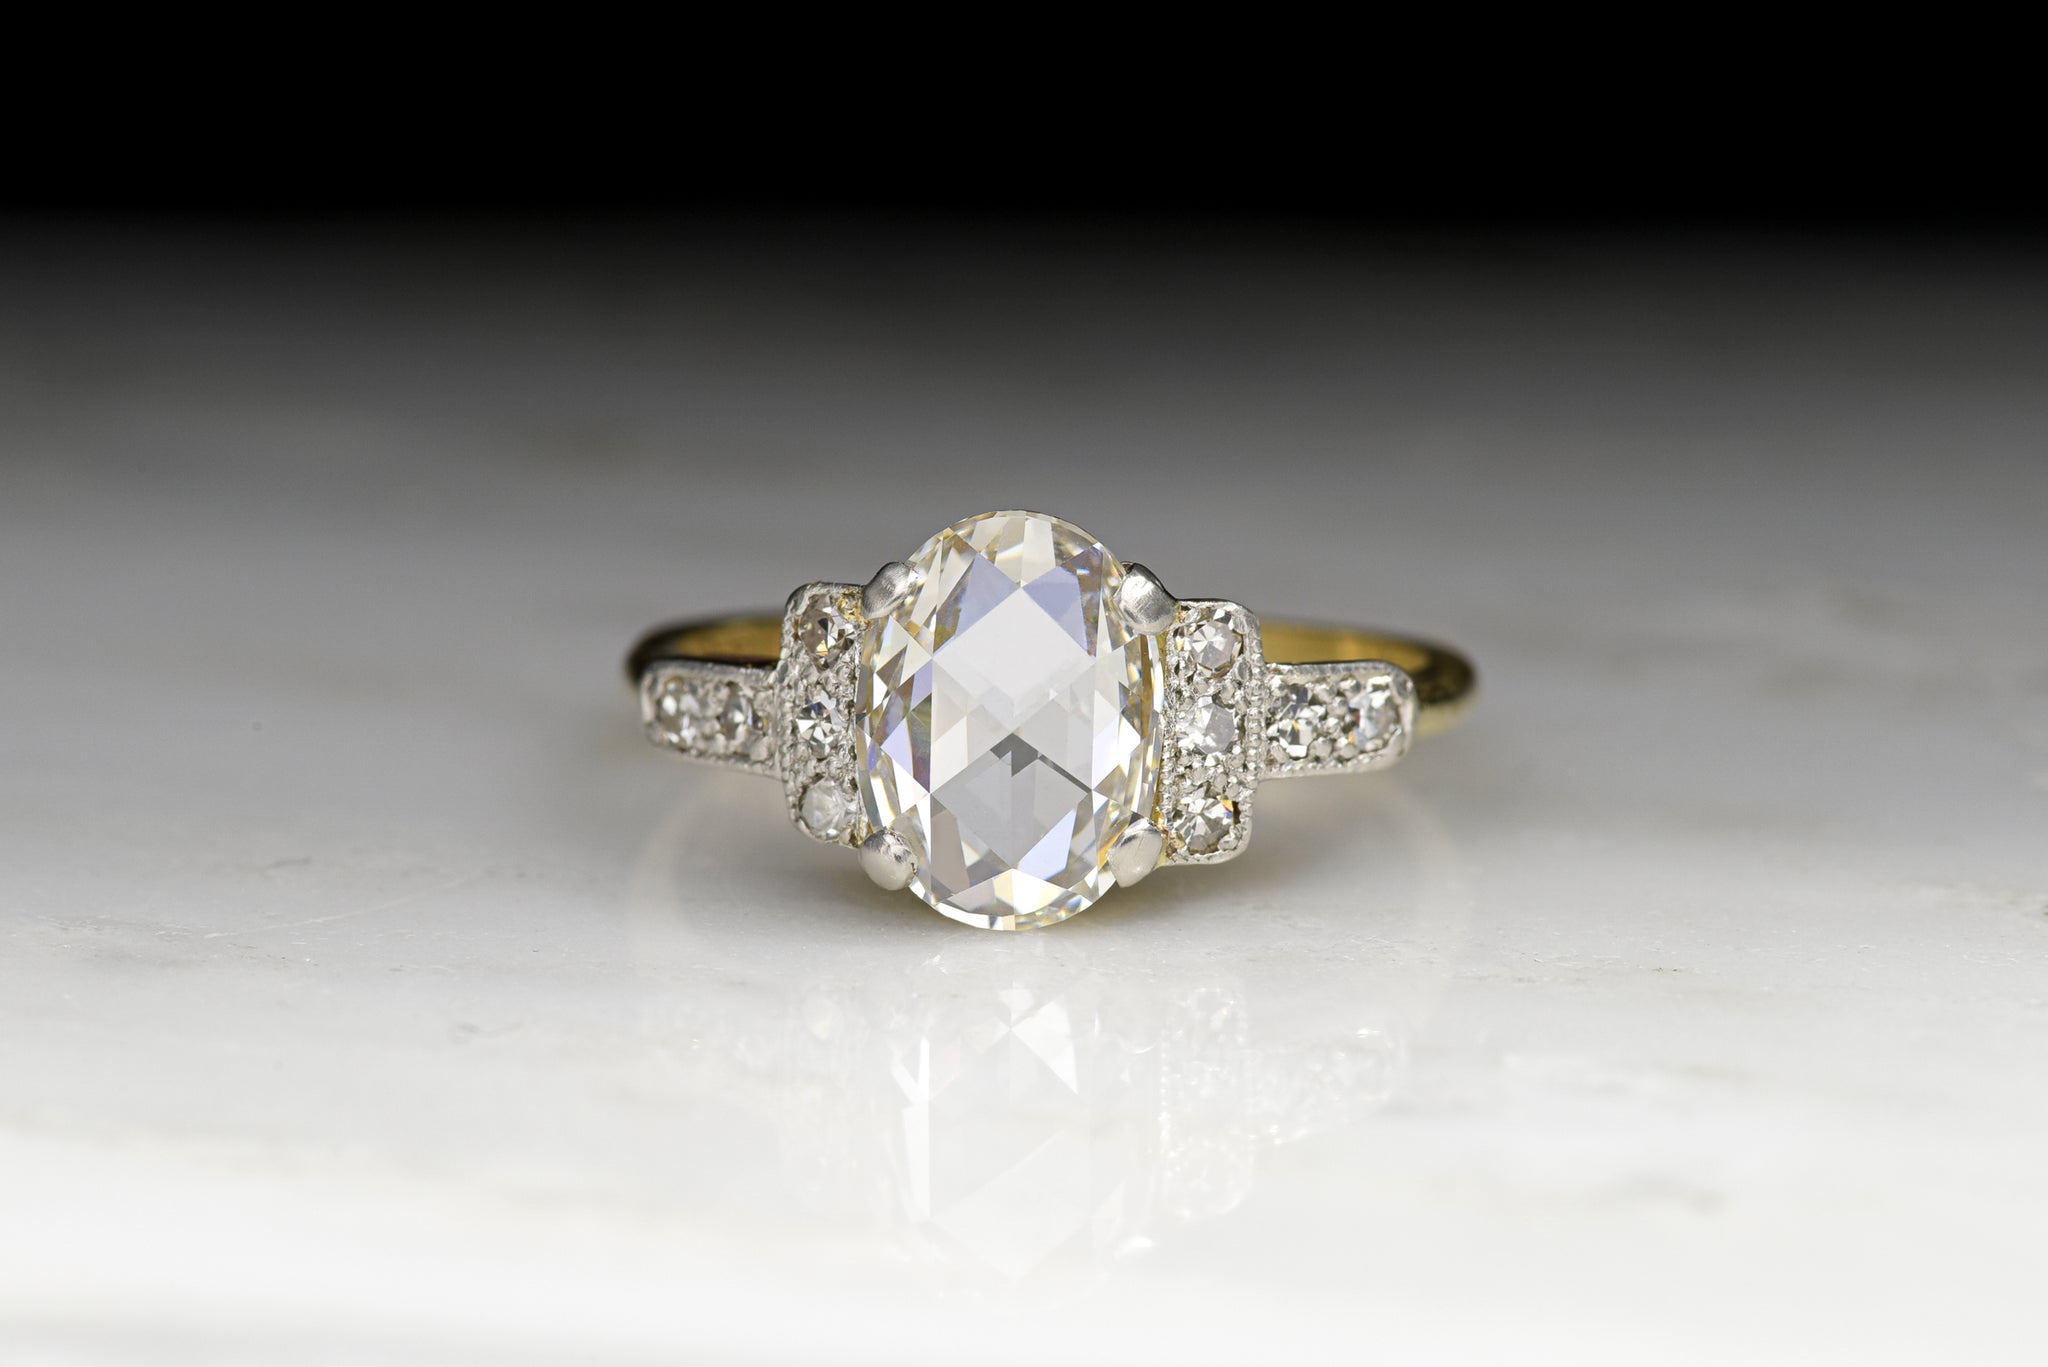 solitaire artemer ring products rings engagement colorless diamond pear daimond